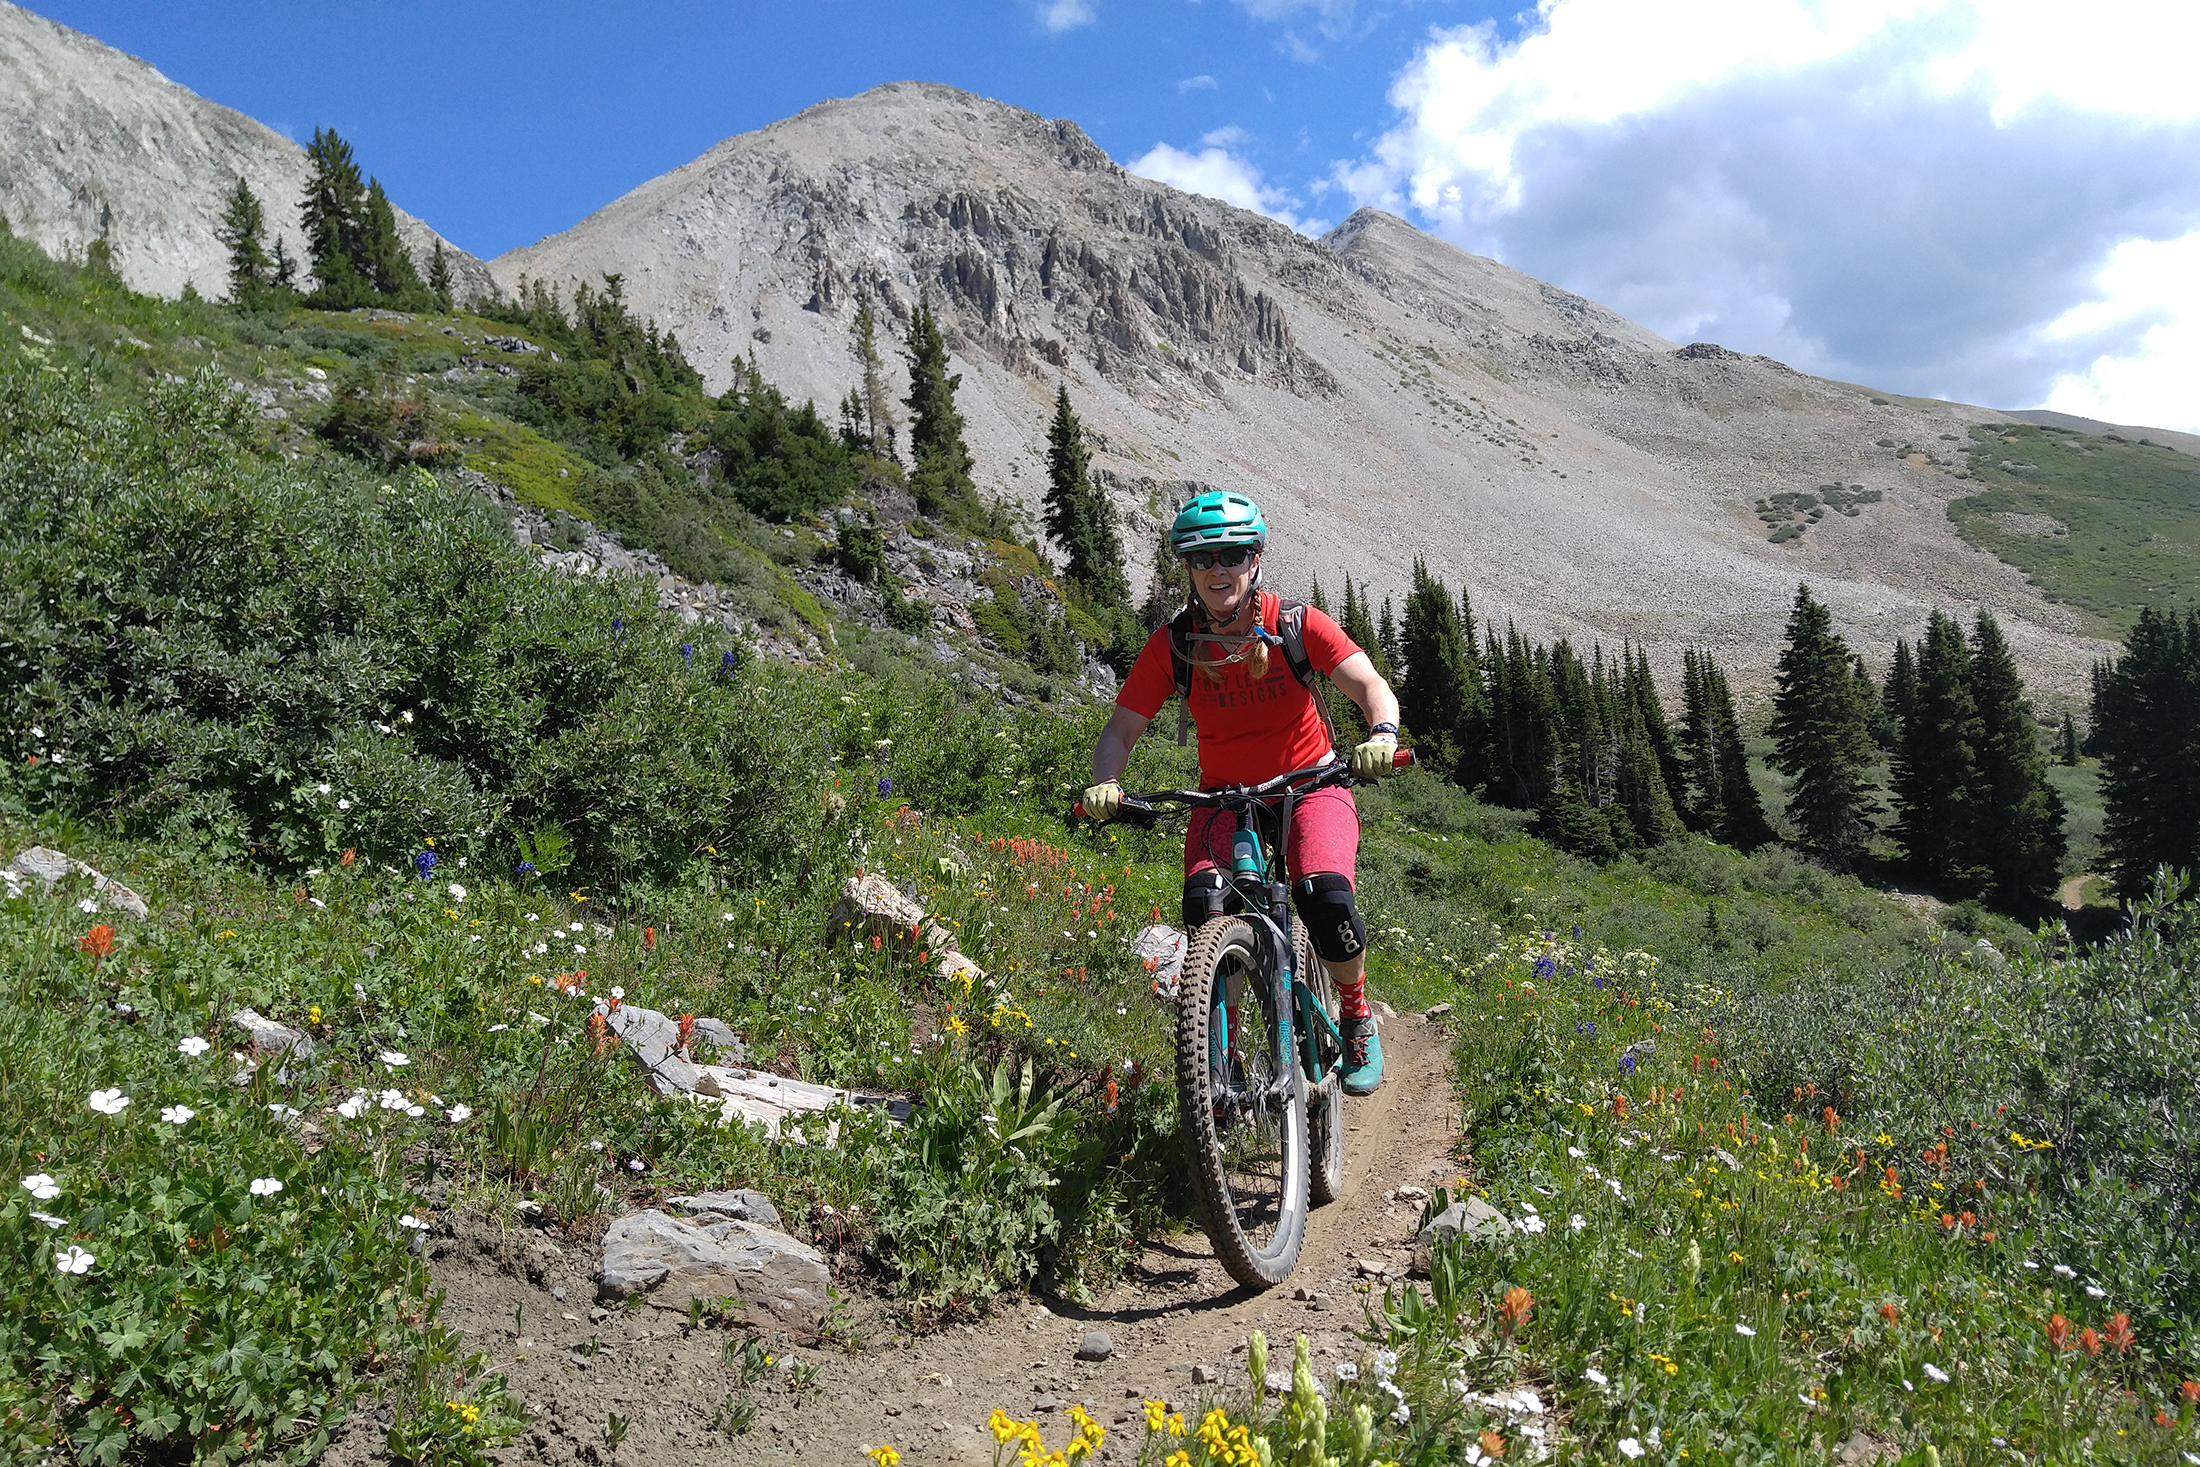 fd70d65029f Best Crested Butte MTB Ride: Record-Setting Local Describes Her Favorite